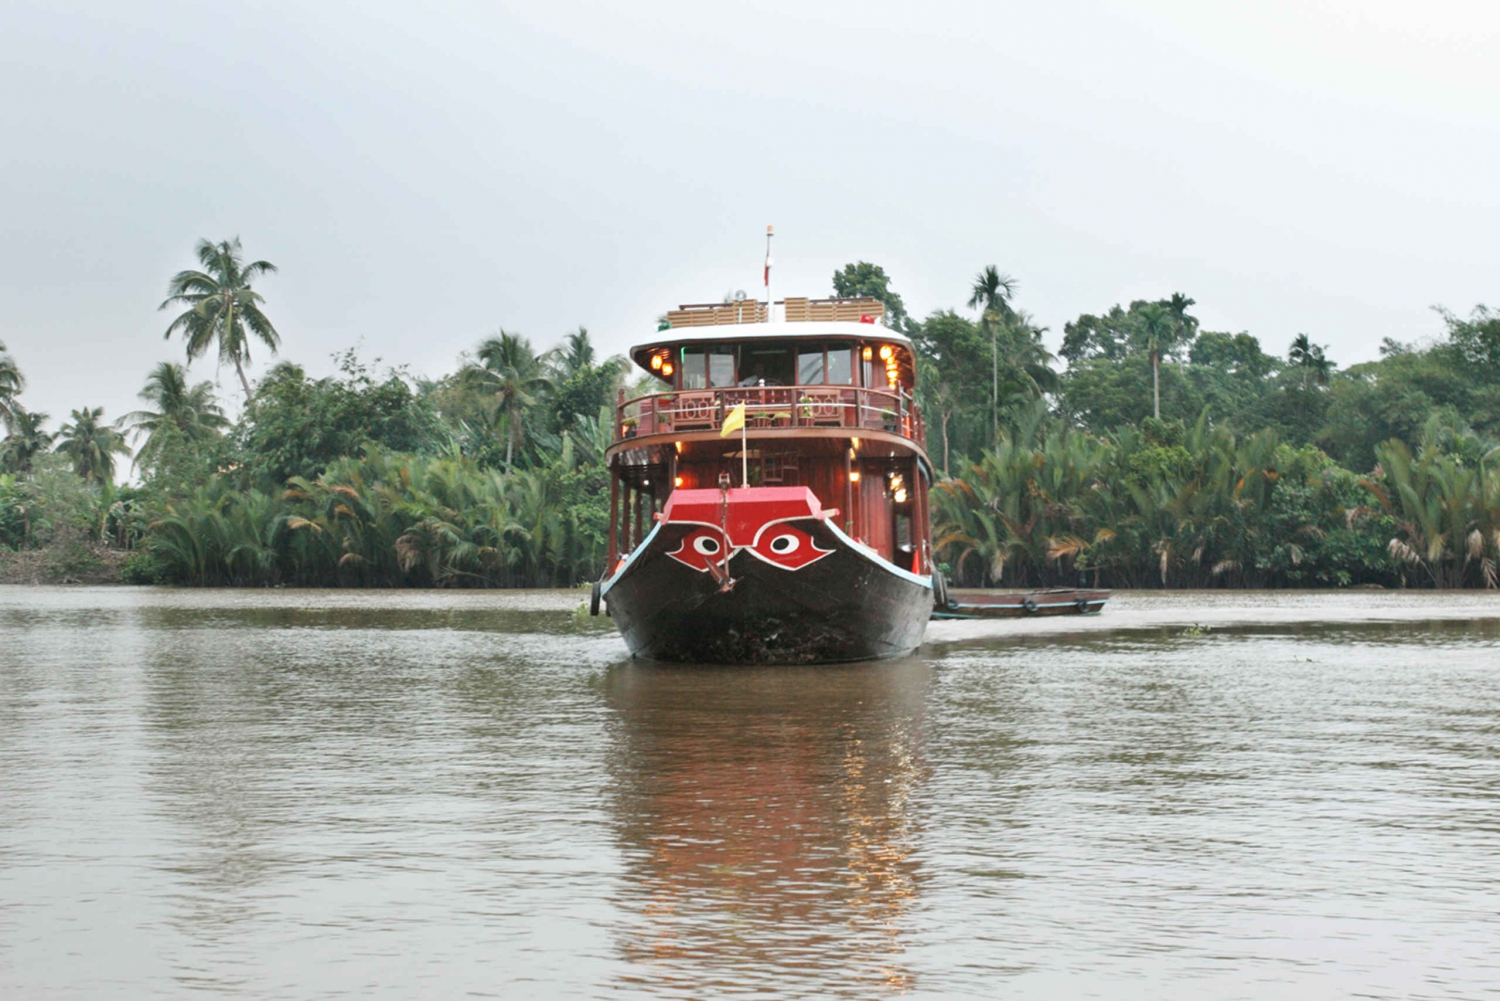 Mekong Delta 2 days Relaxing on Le Cochinchine Cruise